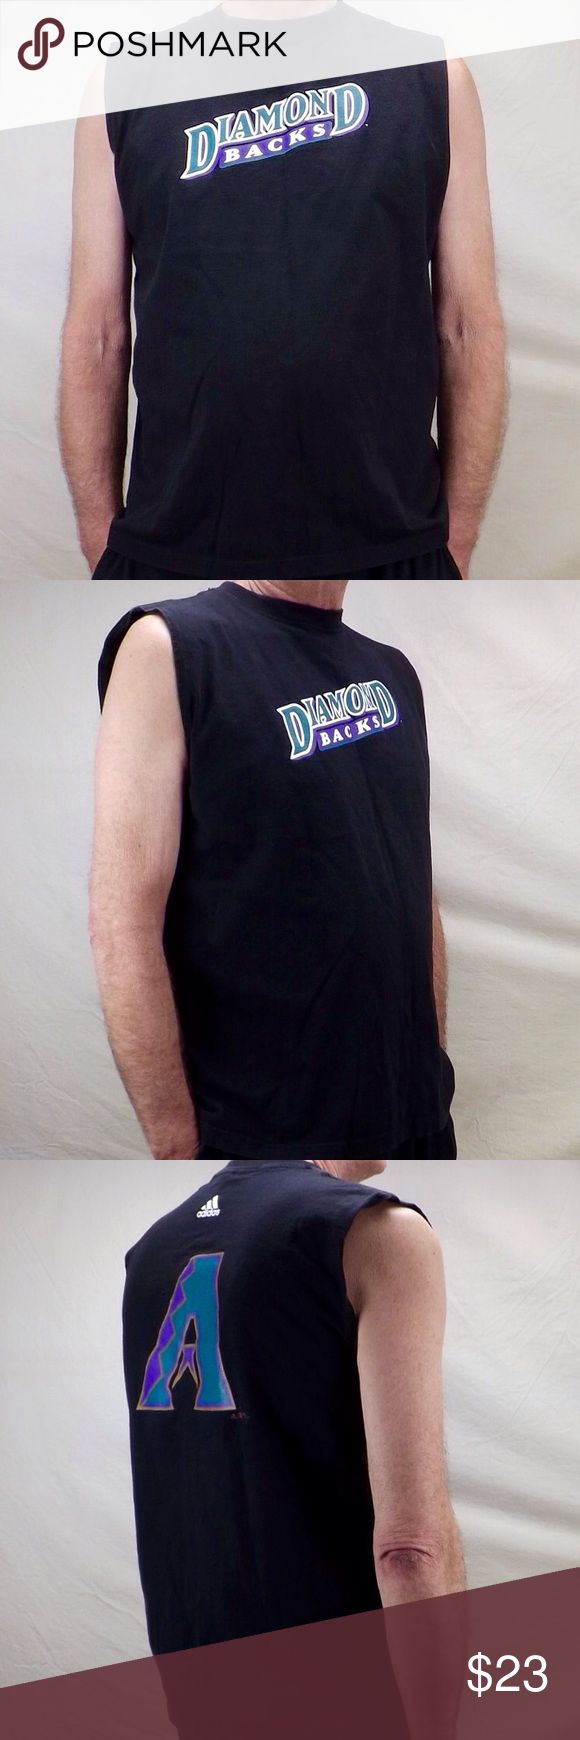 """Adidas official Arizona Diamondbacks mens tank top black crew neck sleeveless t shirt tank top Diamondbacks logo in blue and white diagonally across chest adidas in white on back along with the """" A """" logo in teal and purple good pre owned condition gently/rarely worn Adidas Shirts Tank Tops"""